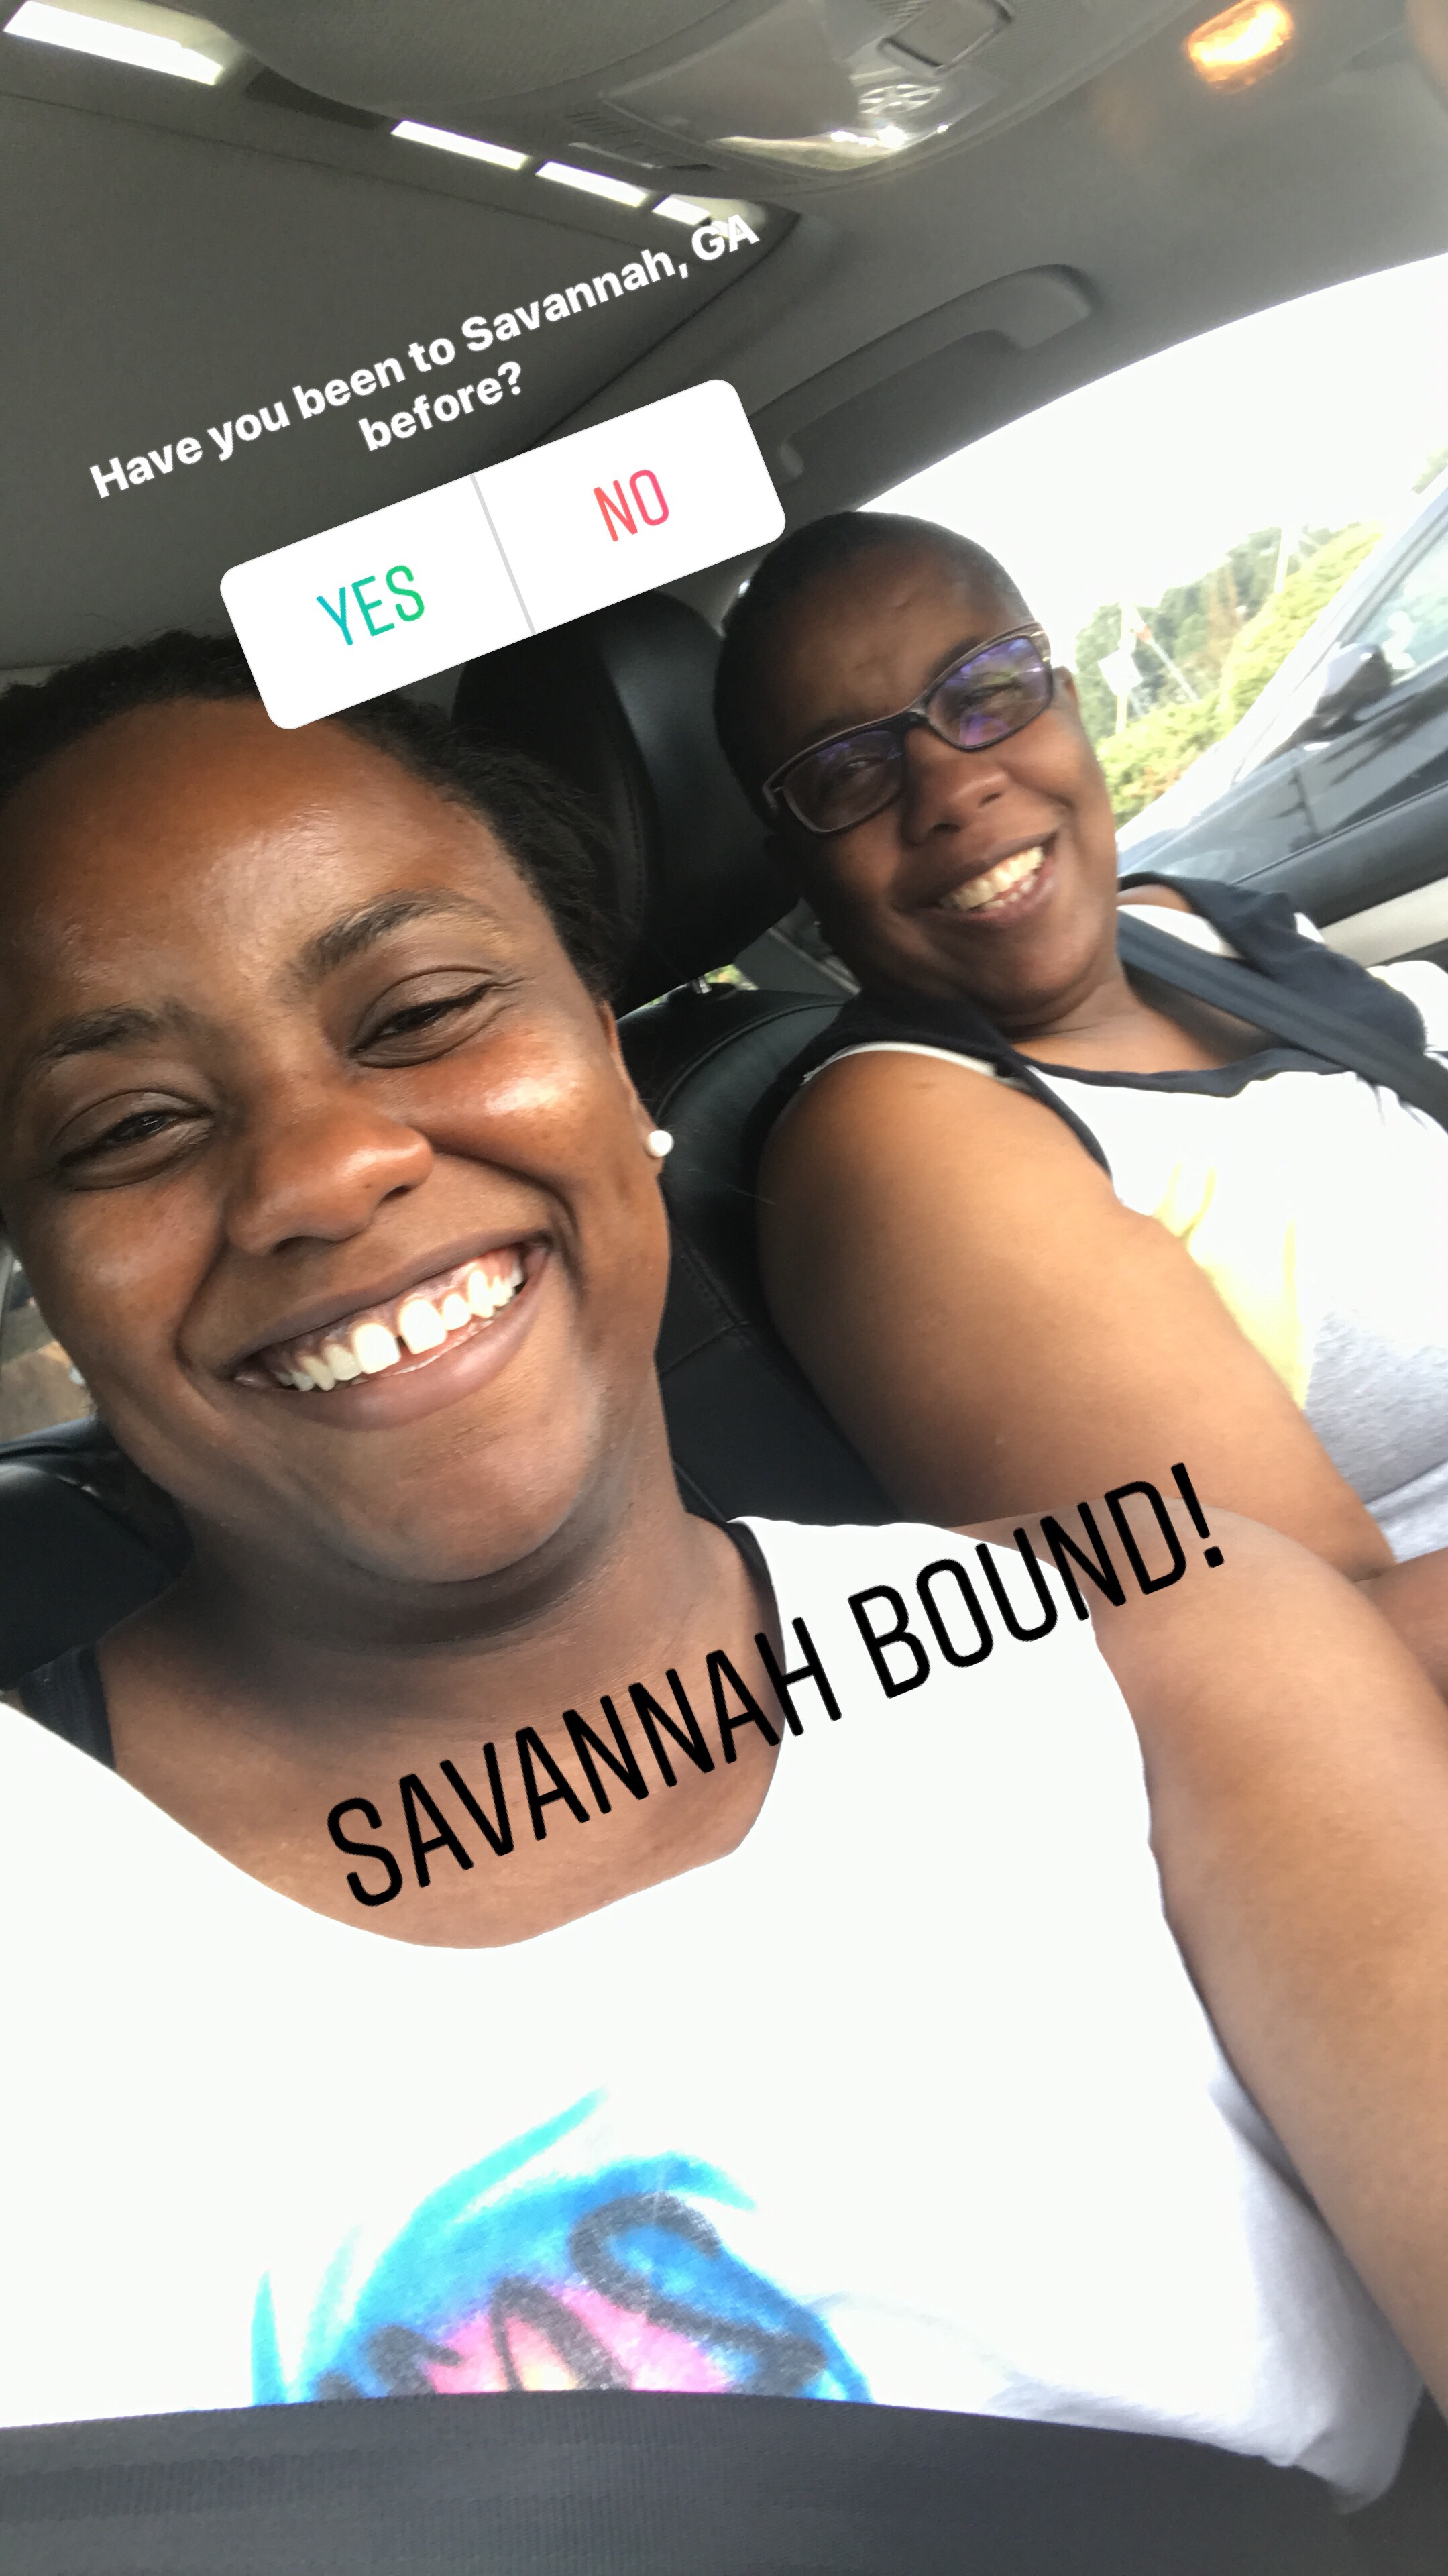 Mom and I Savannah bound after picking up her new glasses! - Savannah